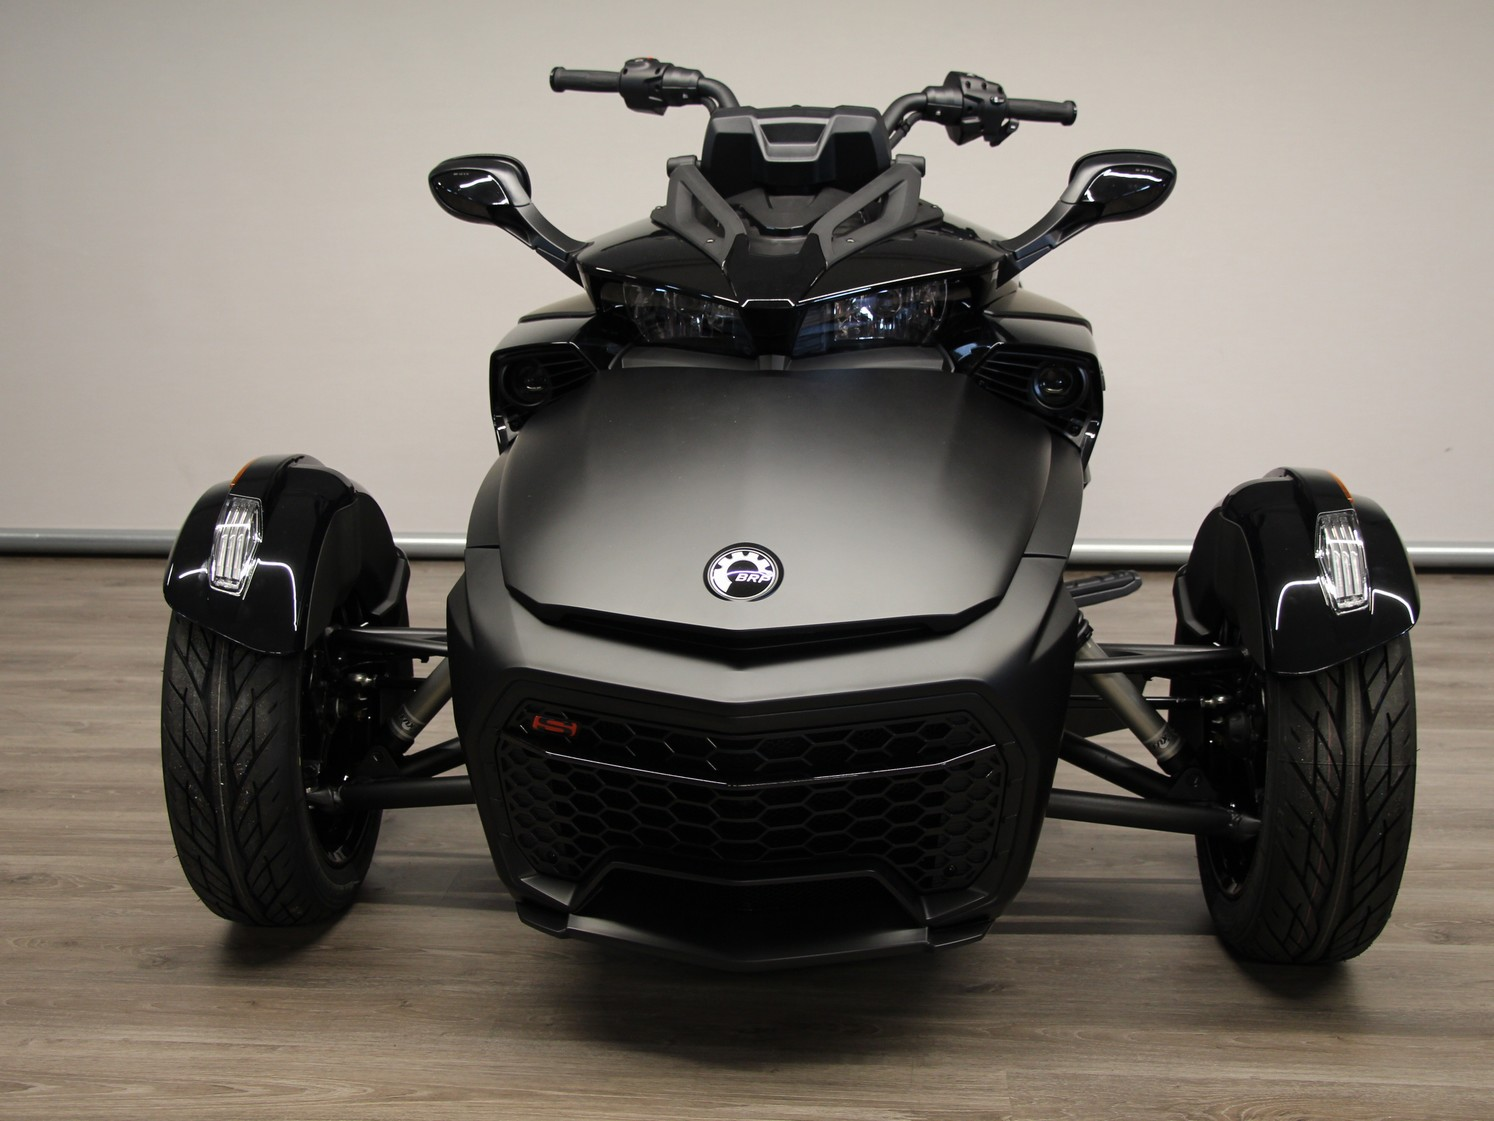 CAN-AM - SPYDER F3-S